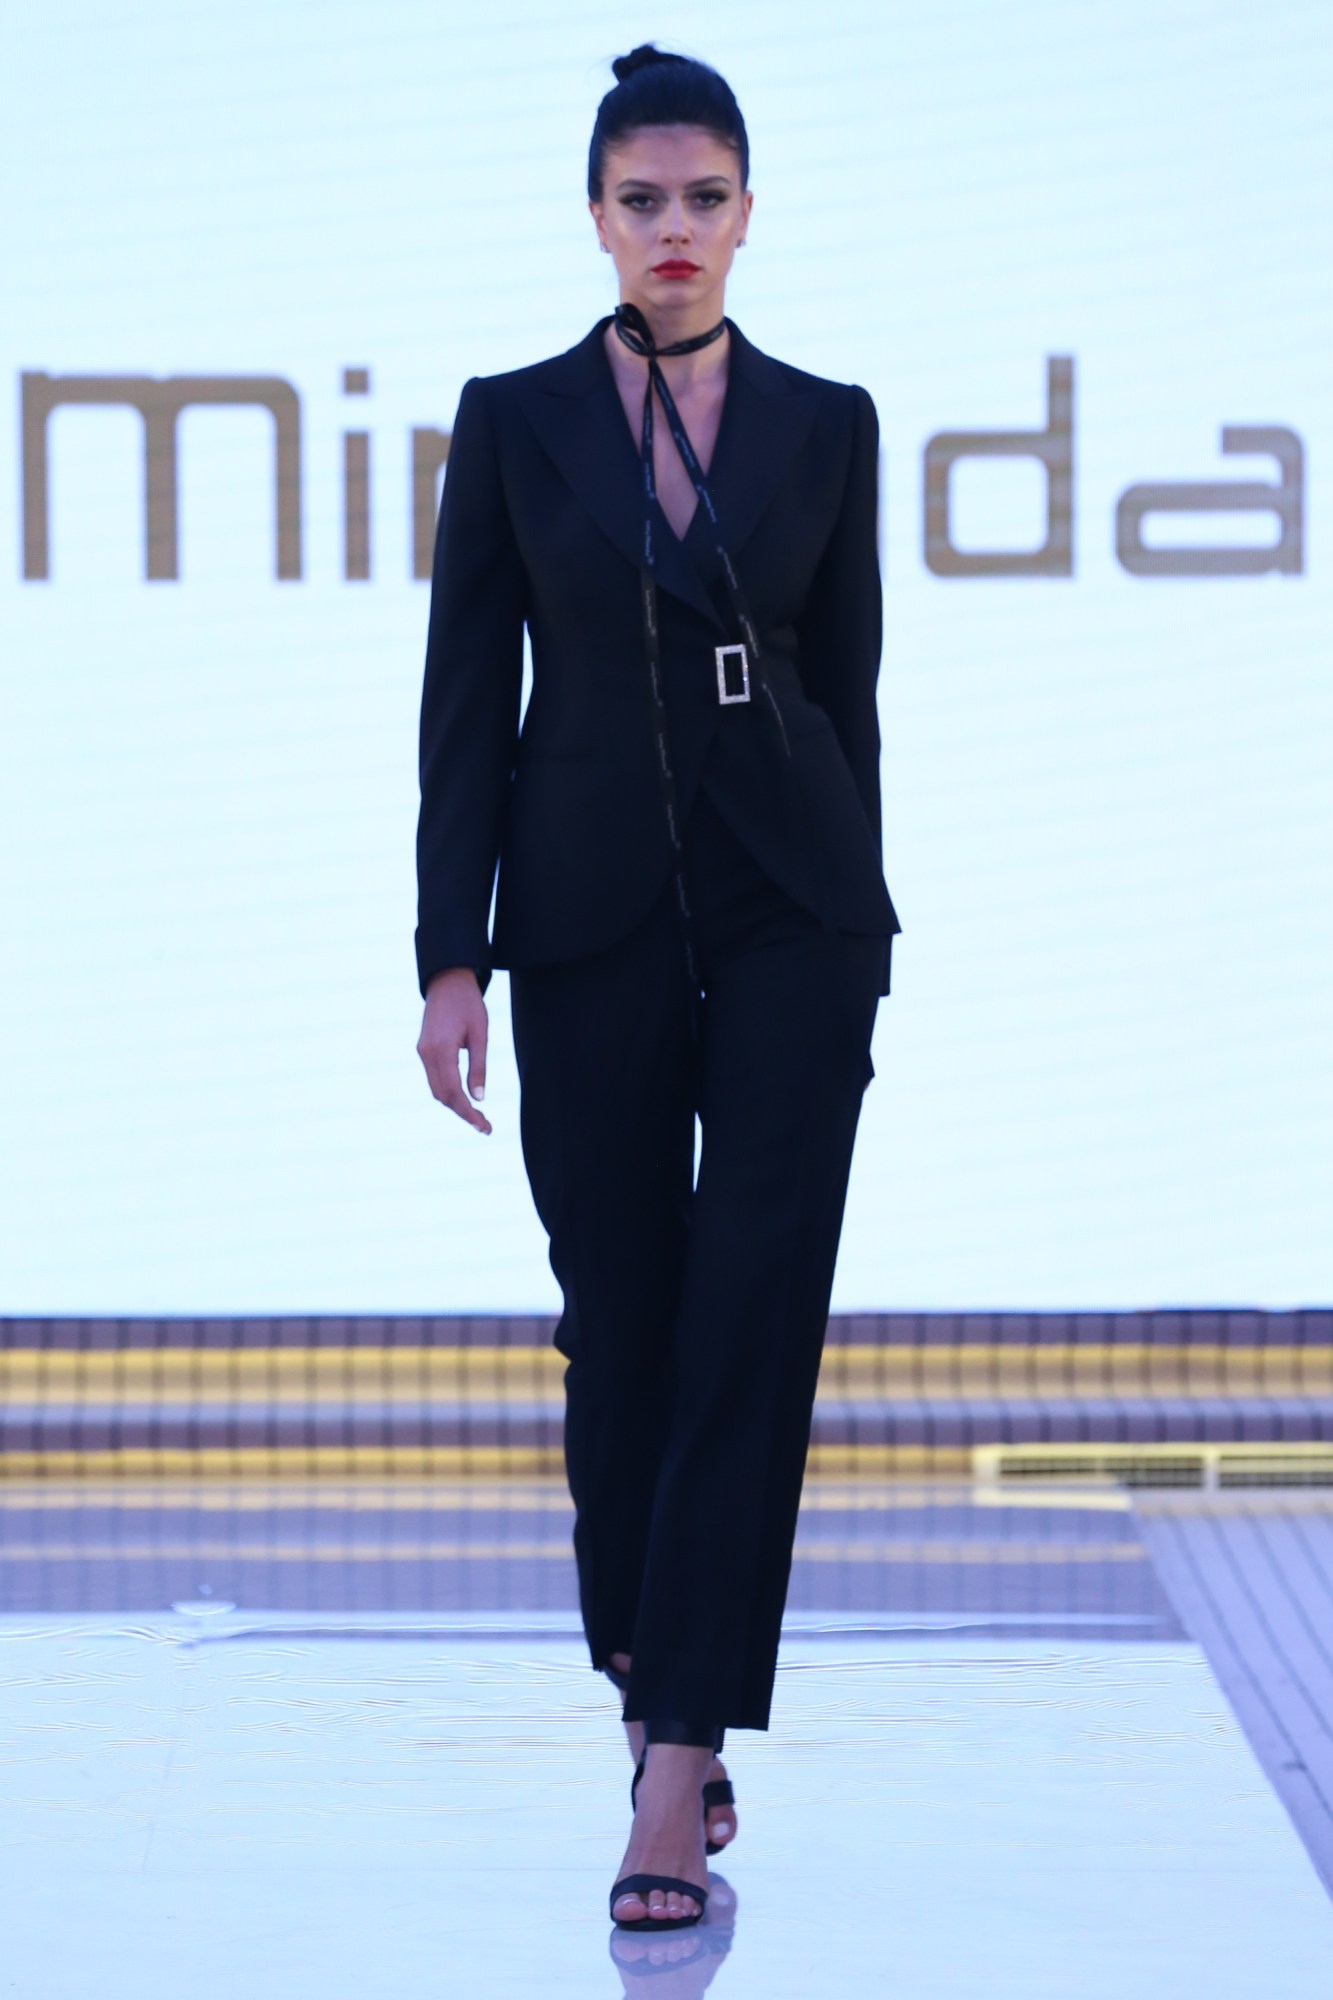 Tony Miranda